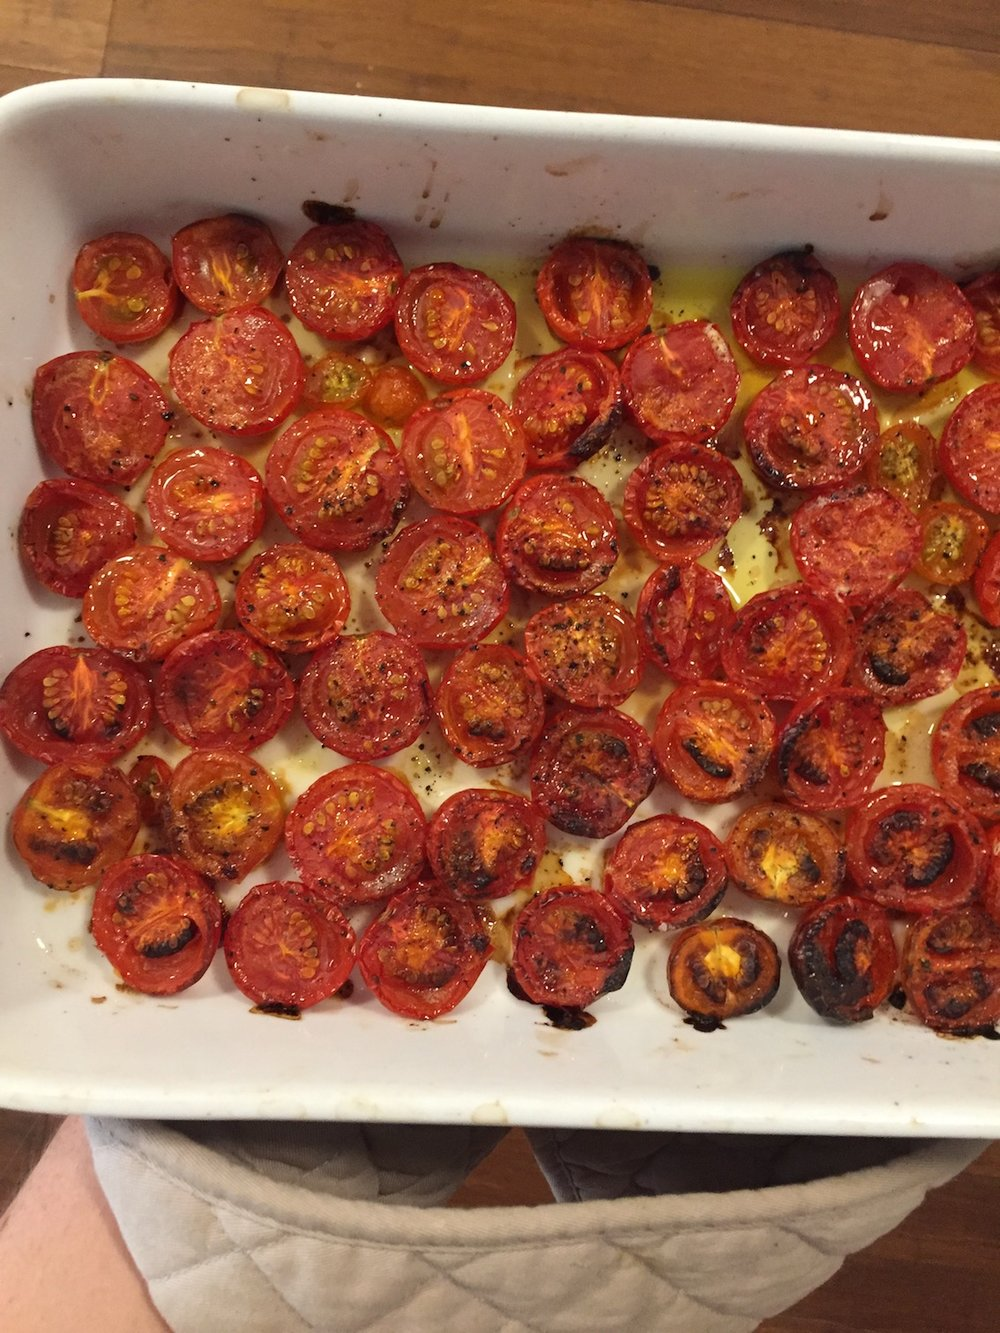 Roast tomatoes fresh out of the oven.